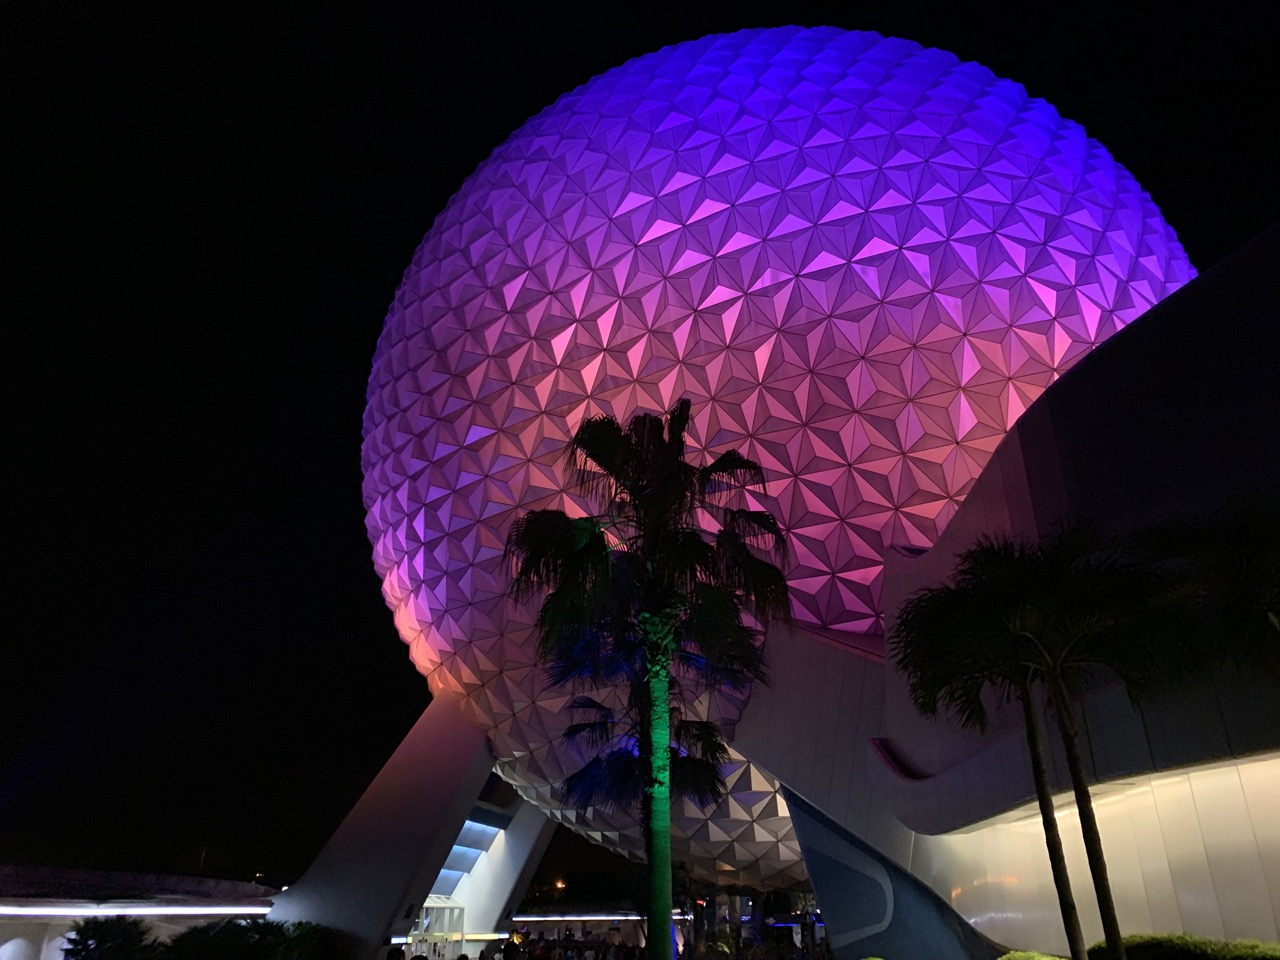 disney world trip report early summer 2019 day four 51 spaceship earth night.jpeg